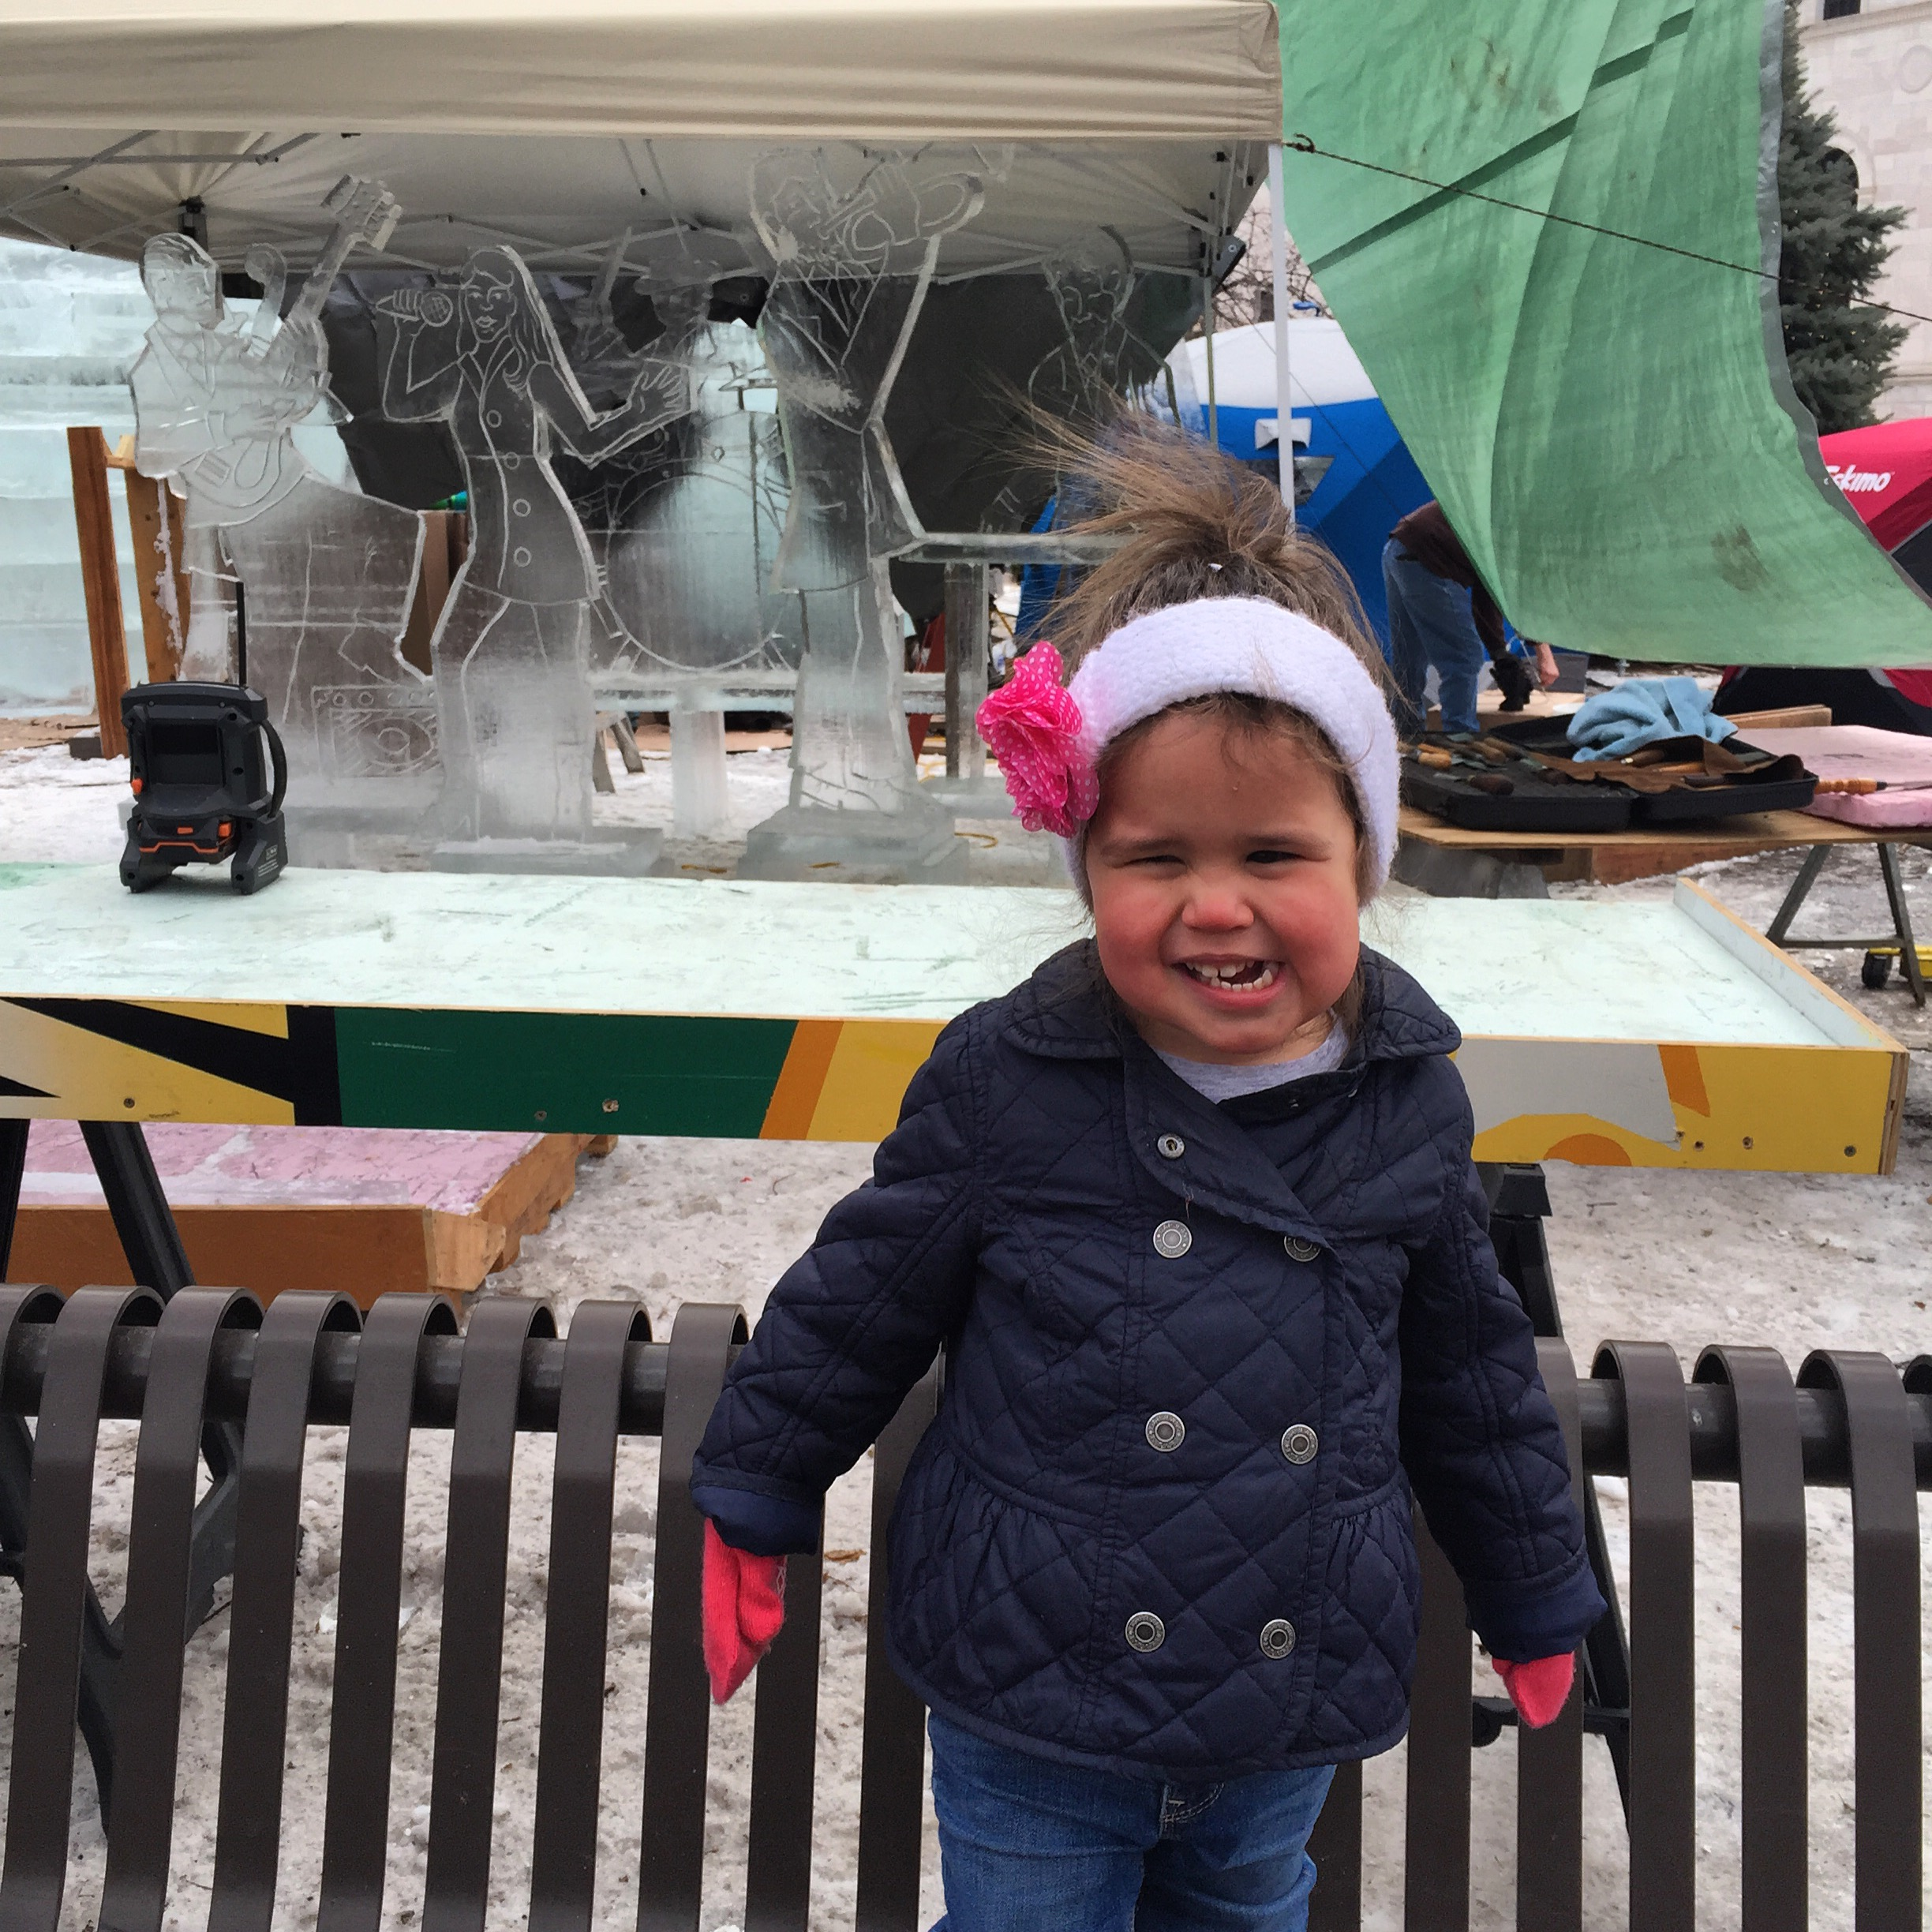 We went to check out the ice sculptures at the Winter Carnival in St Paul.